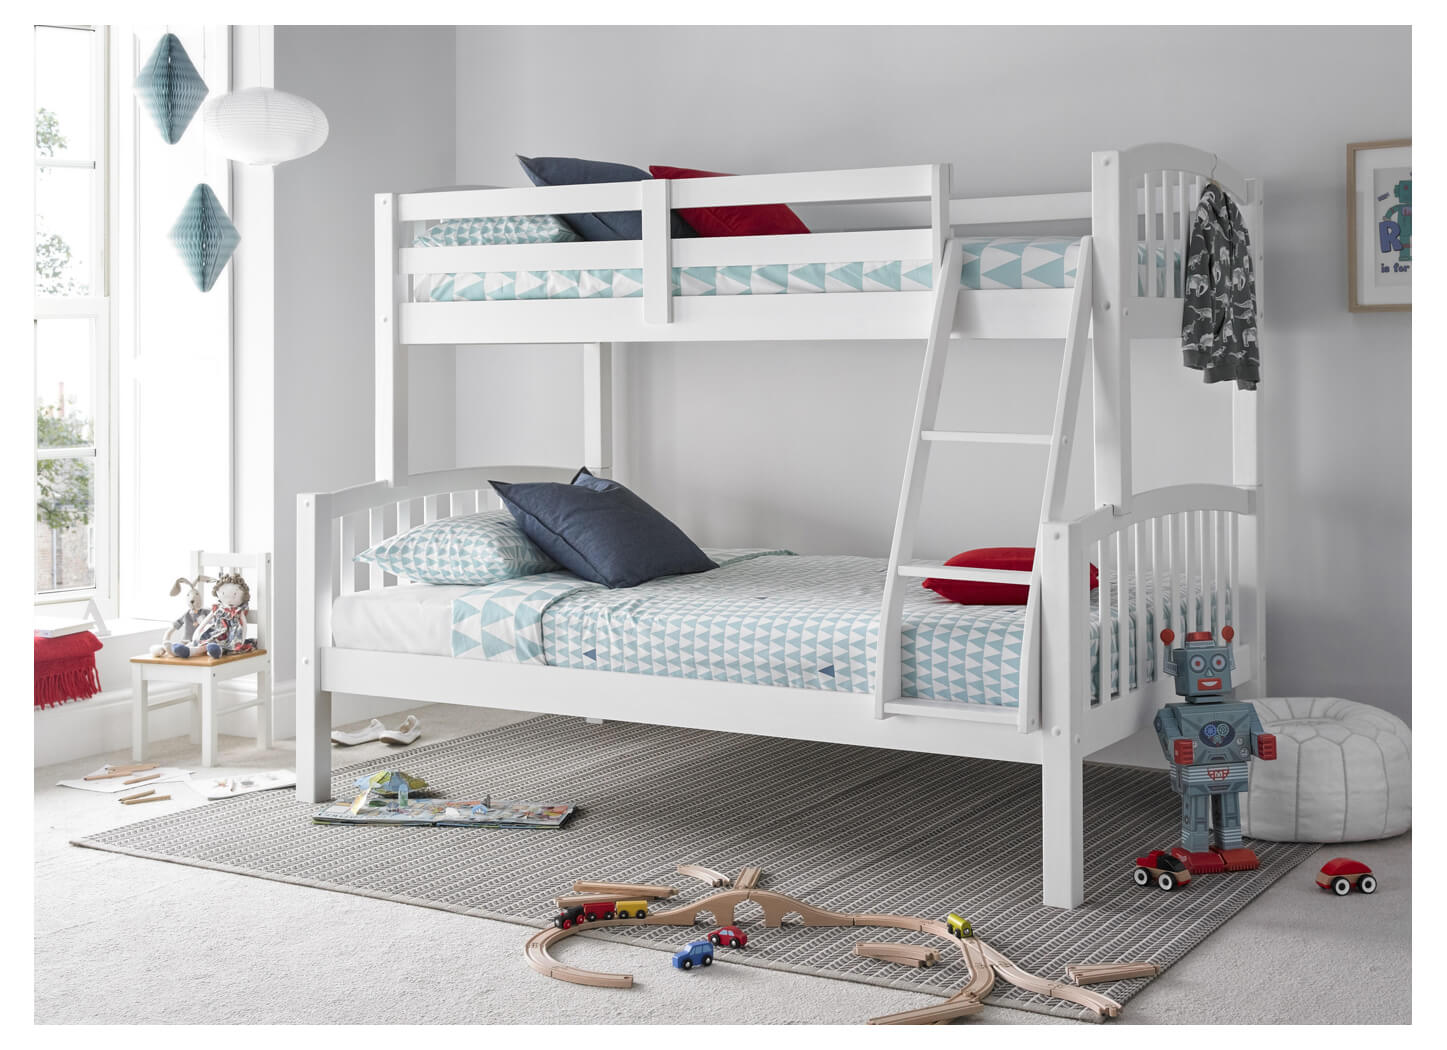 White triple sleeper bunks 3ft over 4ft | Small double three sleeper bunk bed - bedsmart